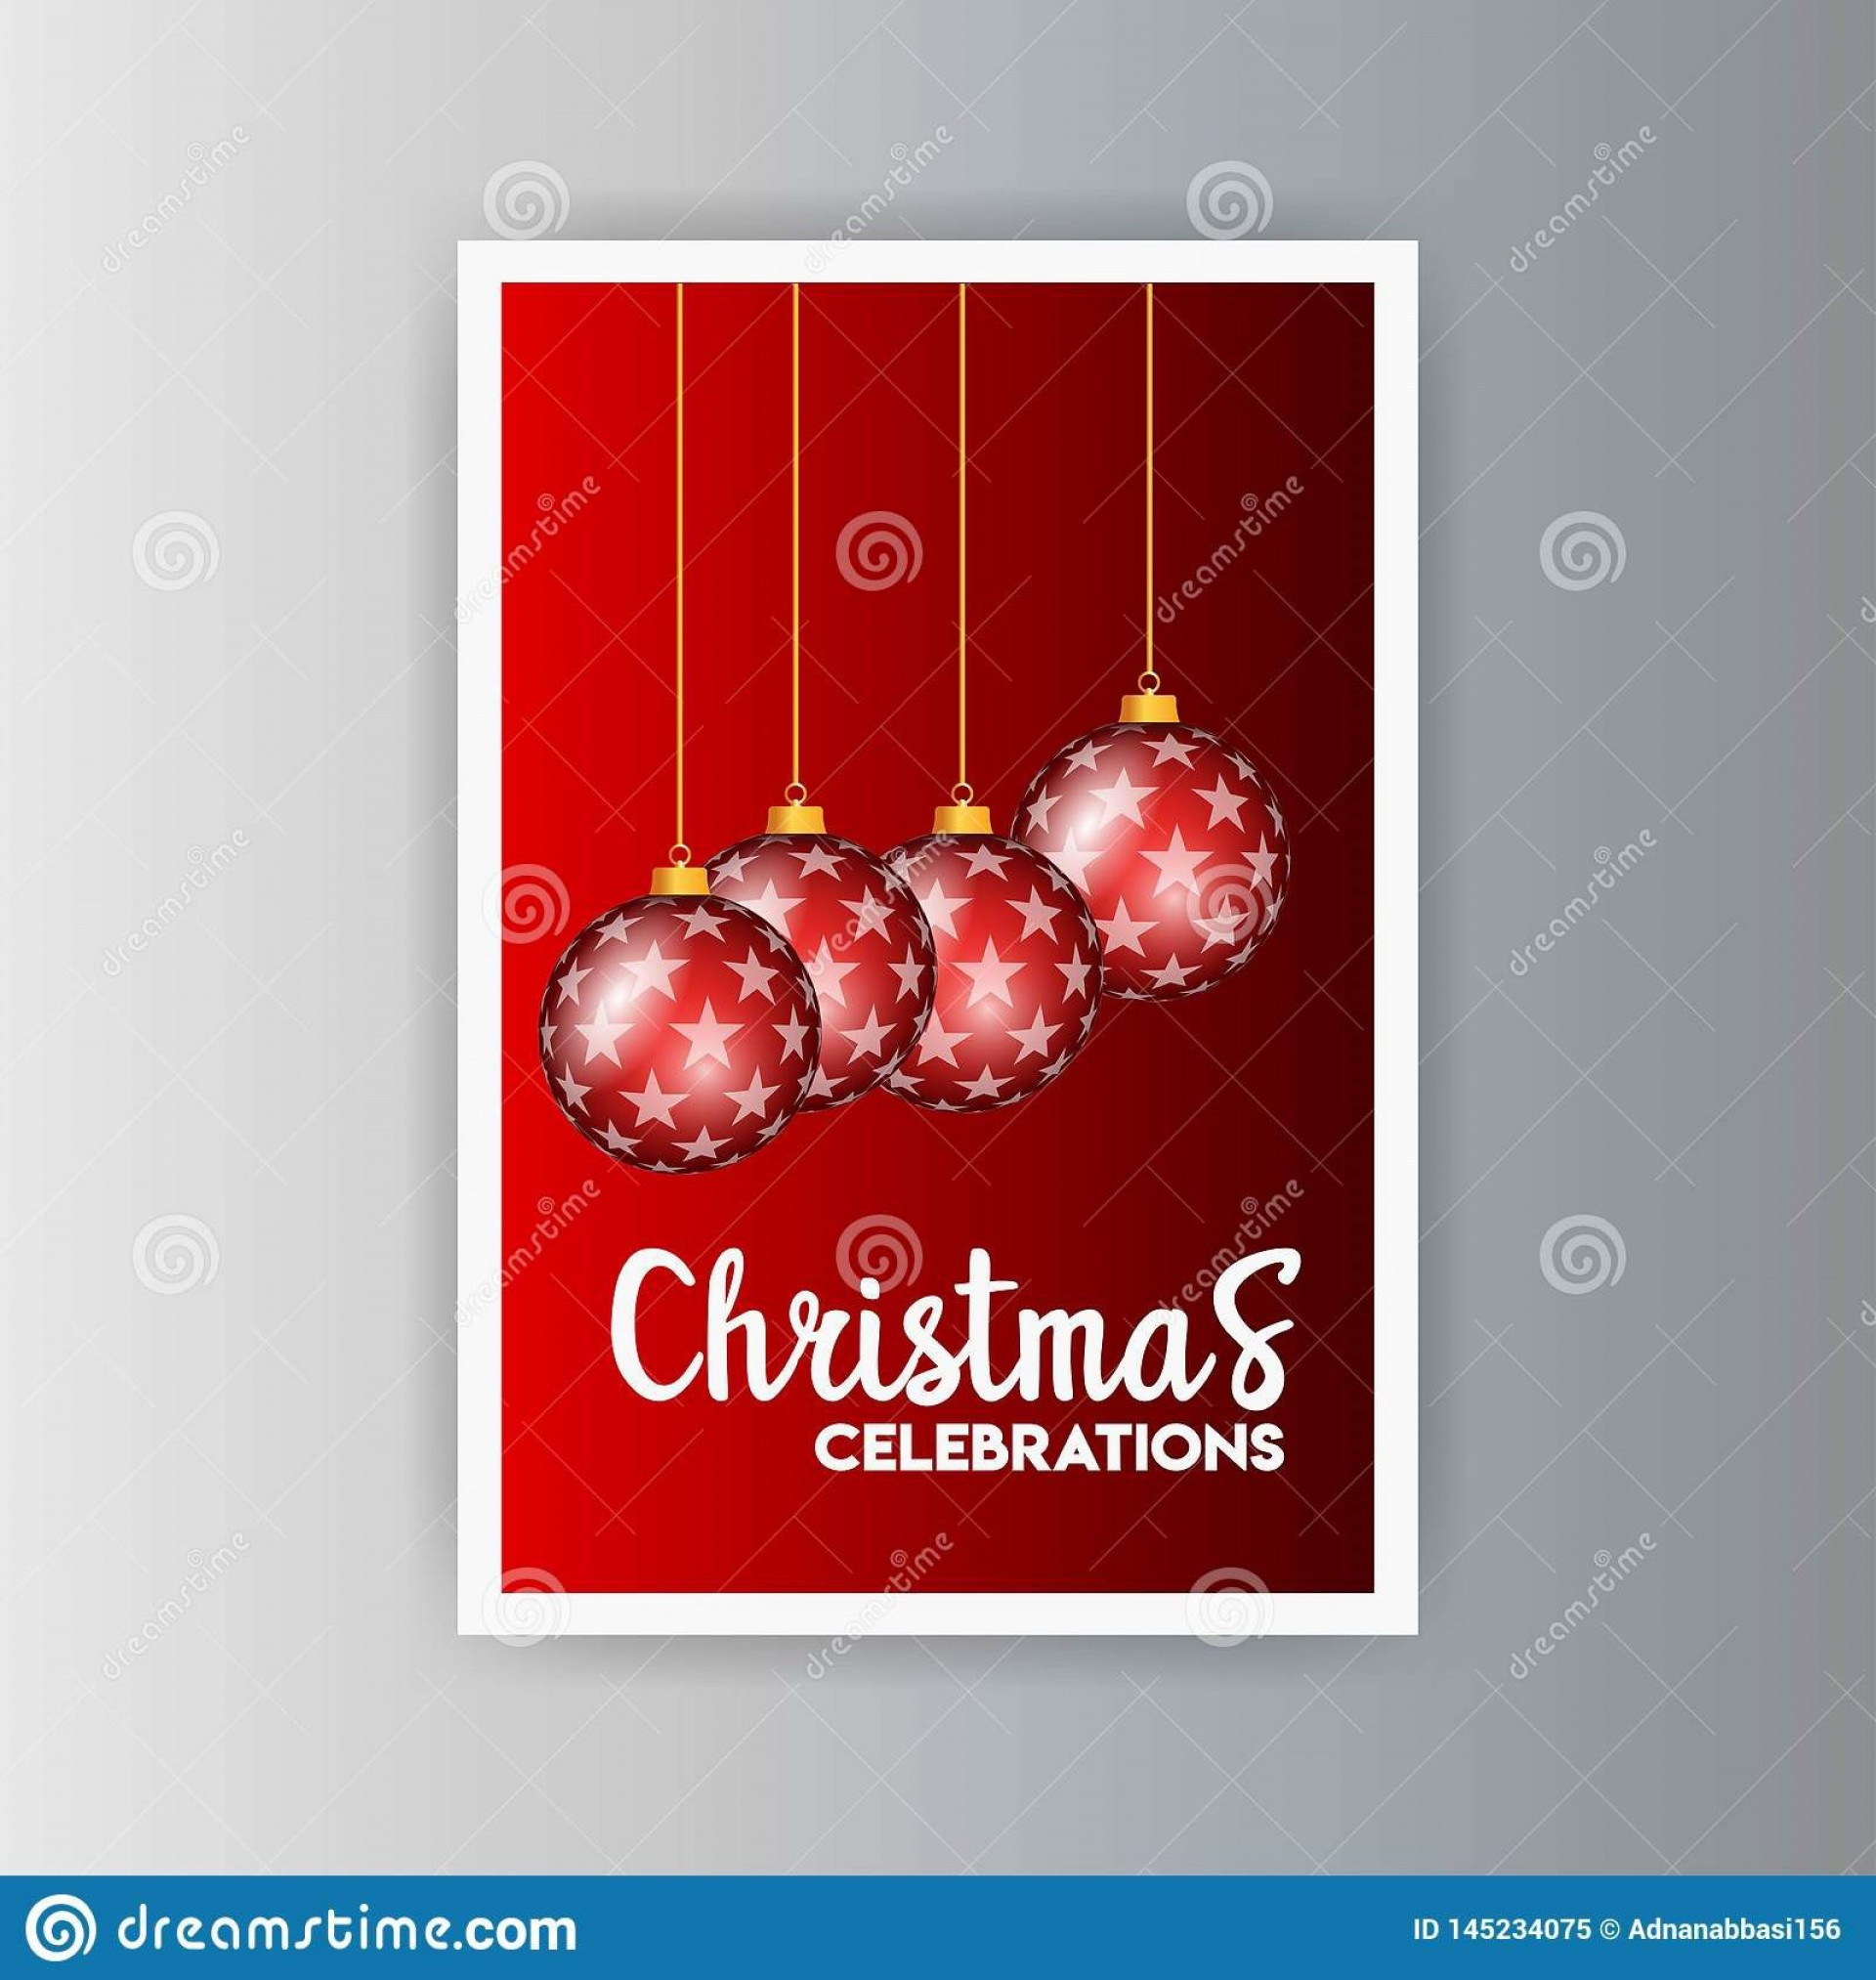 009 Top Christma Party Flyer Template Free Highest Clarity  Company Invitation Printable Word1920